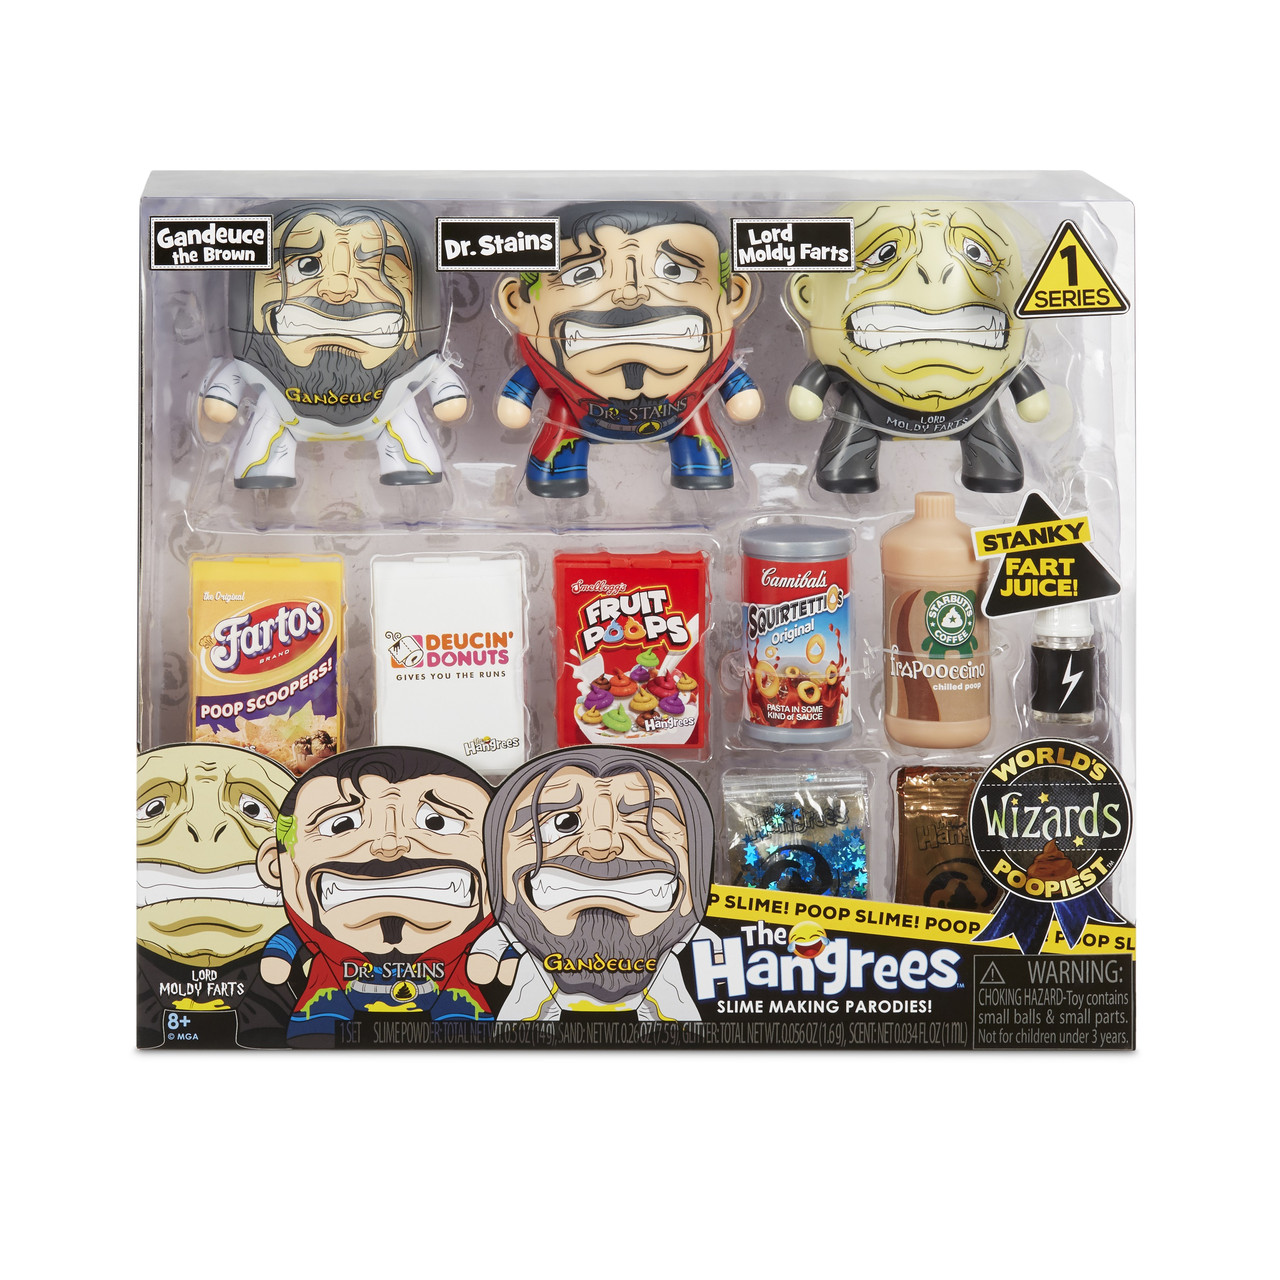 The Hangrees игровой набор со слаймом 563082 World's Poopiest Wizards Collectible Parody Figures 3-Pack